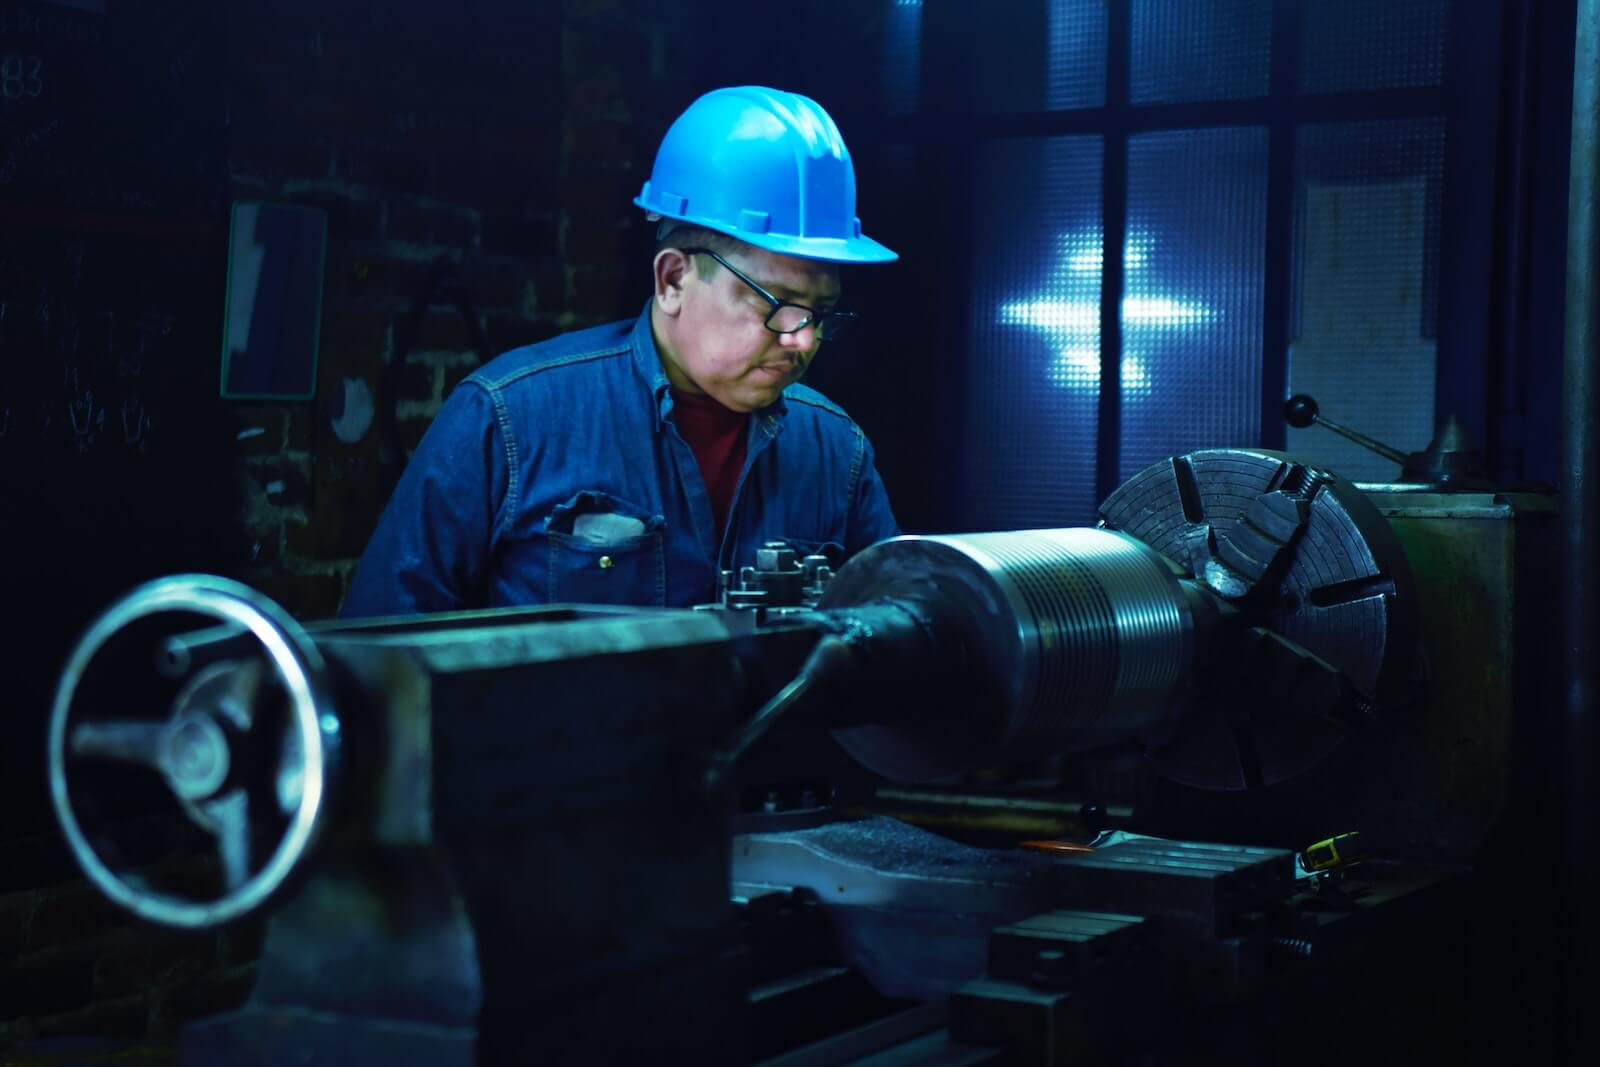 Workplace safety series: manufacturing